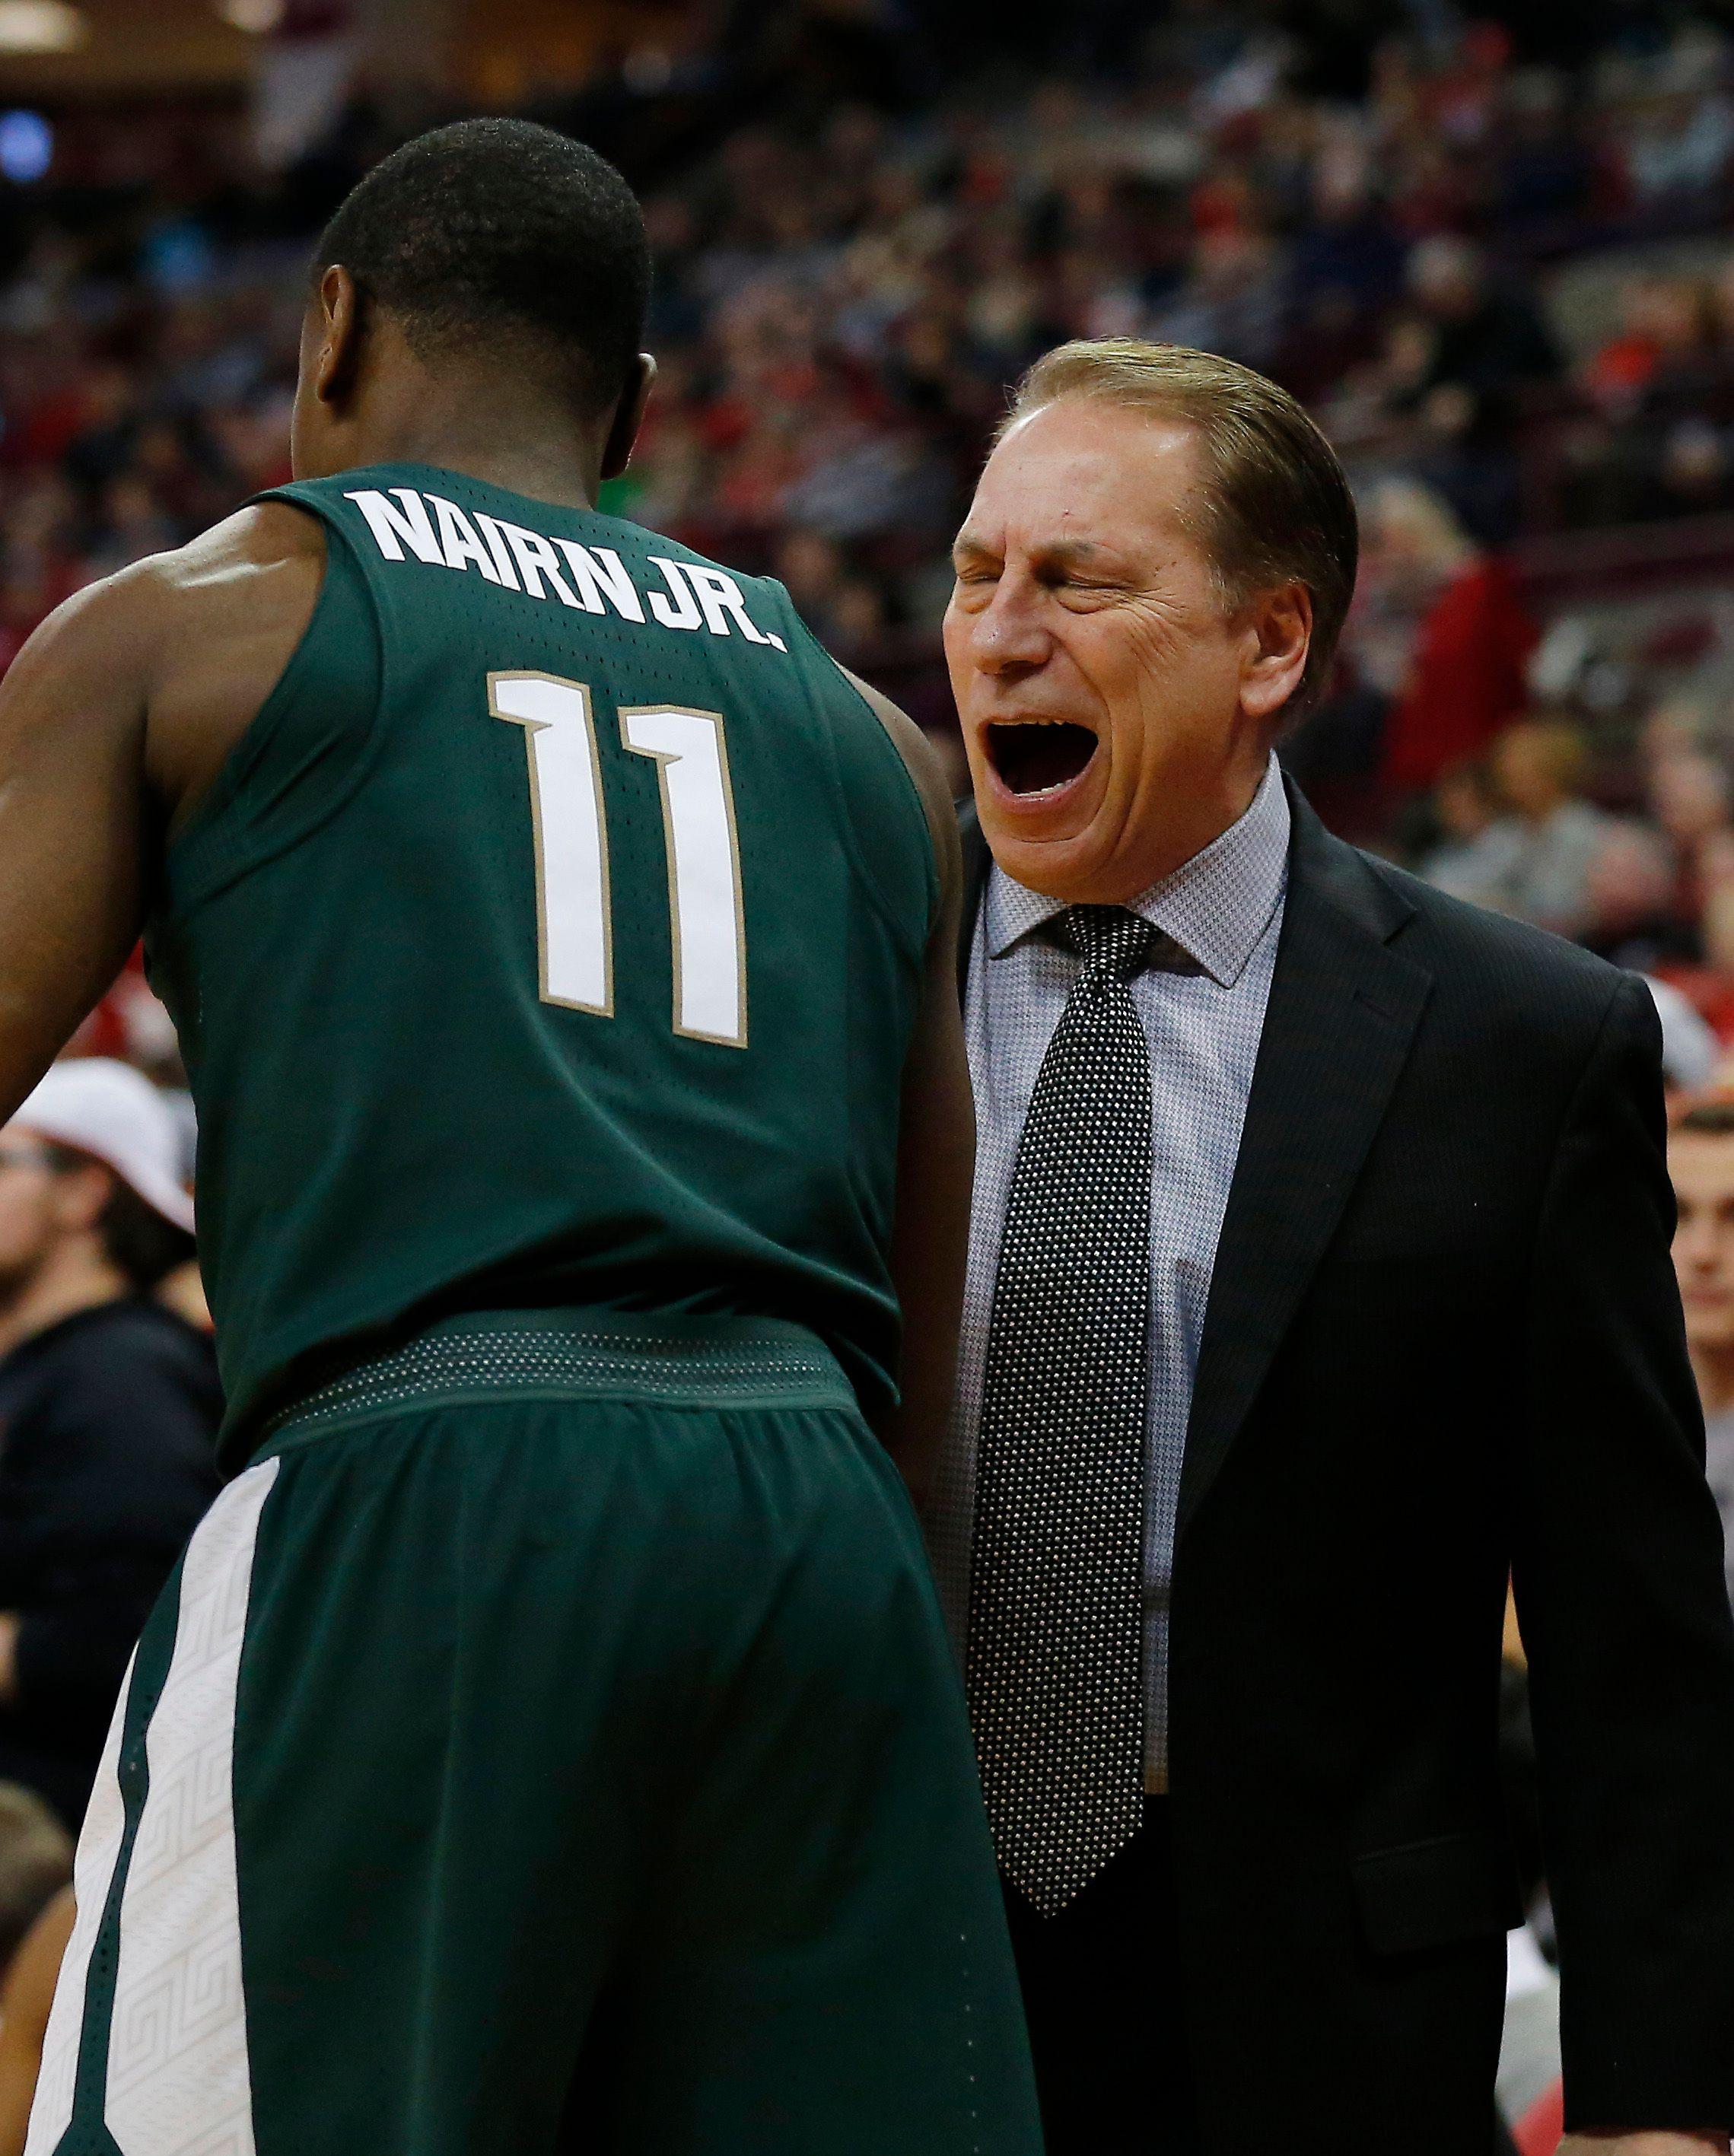 Couch: 3 quick takes on Michigan State's 80-64 loss at Ohio State - Izzo's bad day, etc.